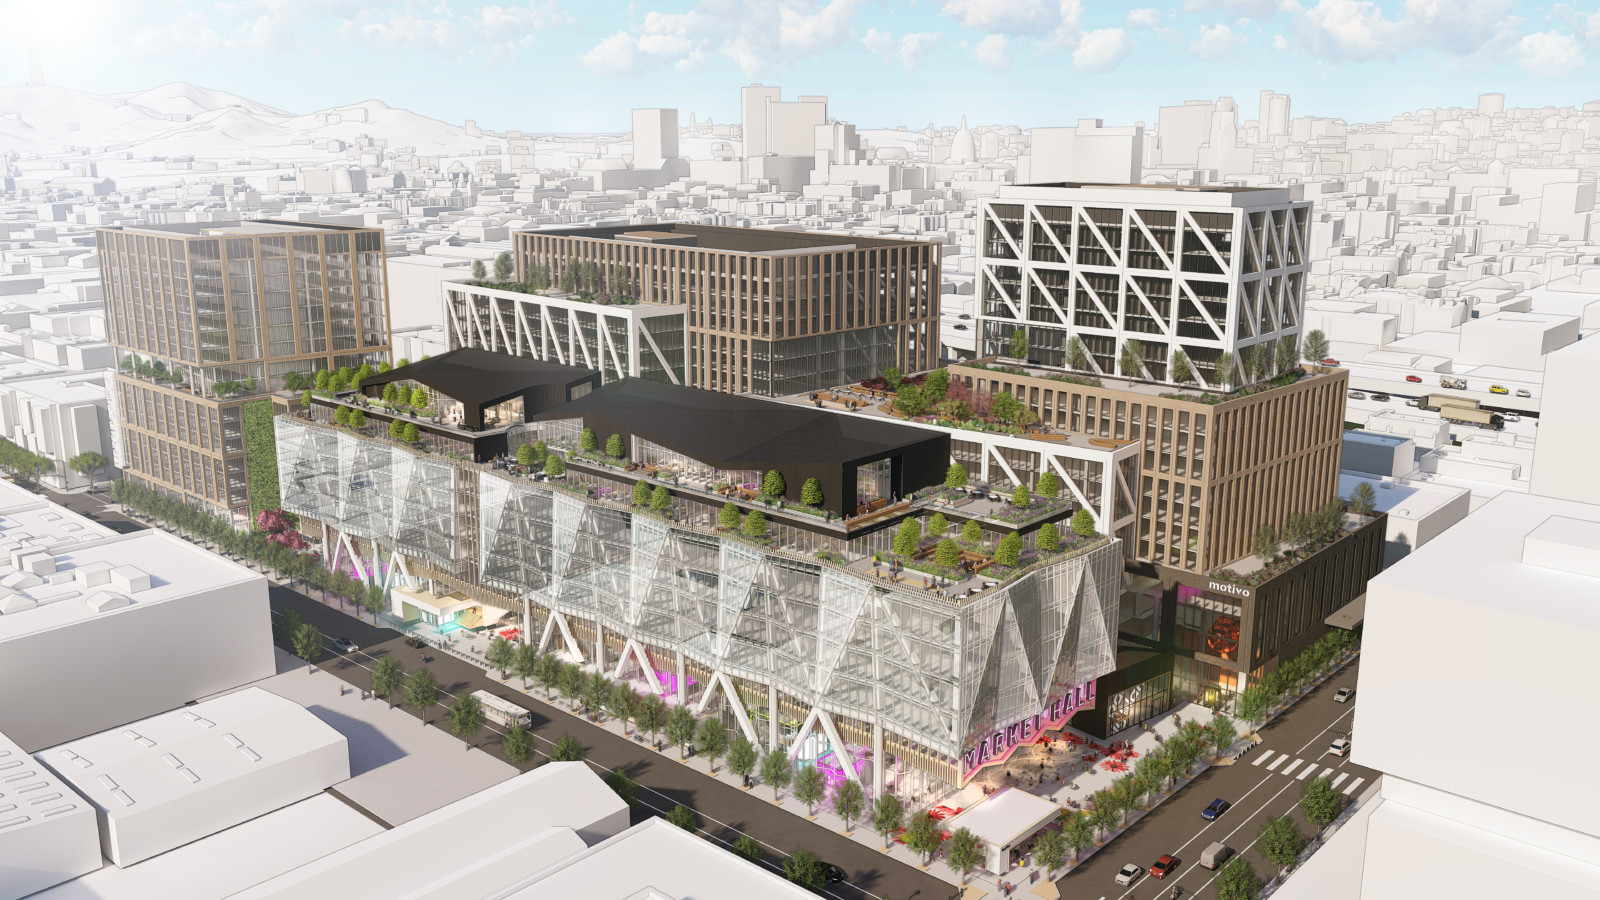 San Francisco Flower Mart Project